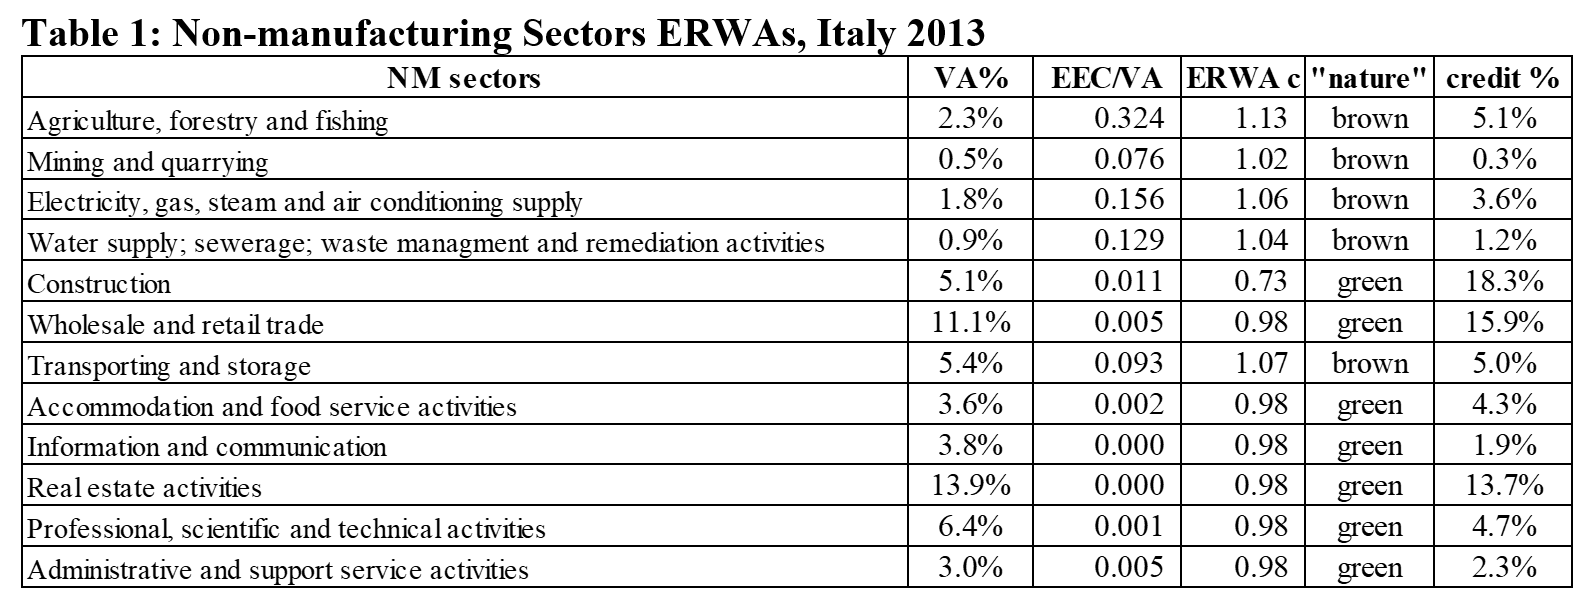 Table 1: Non-manufacturing Sectors ERWAs, Italy 2013